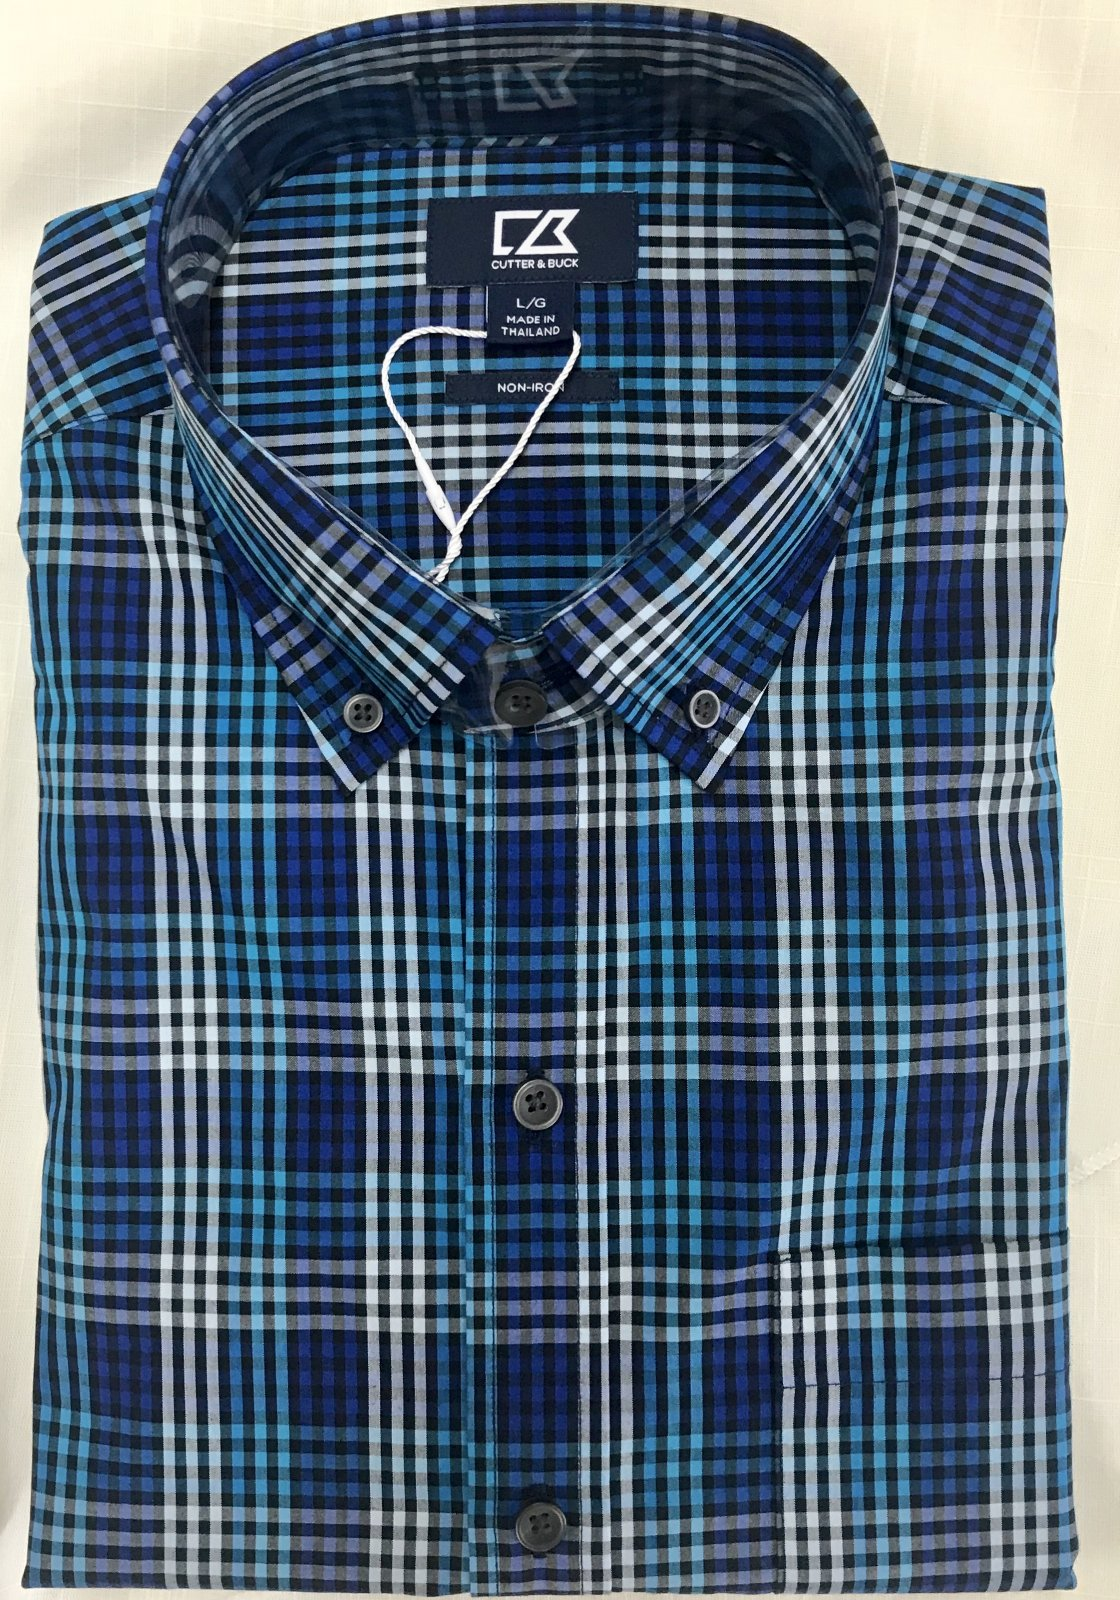 Cutter & Buck Sutton Check Shirt